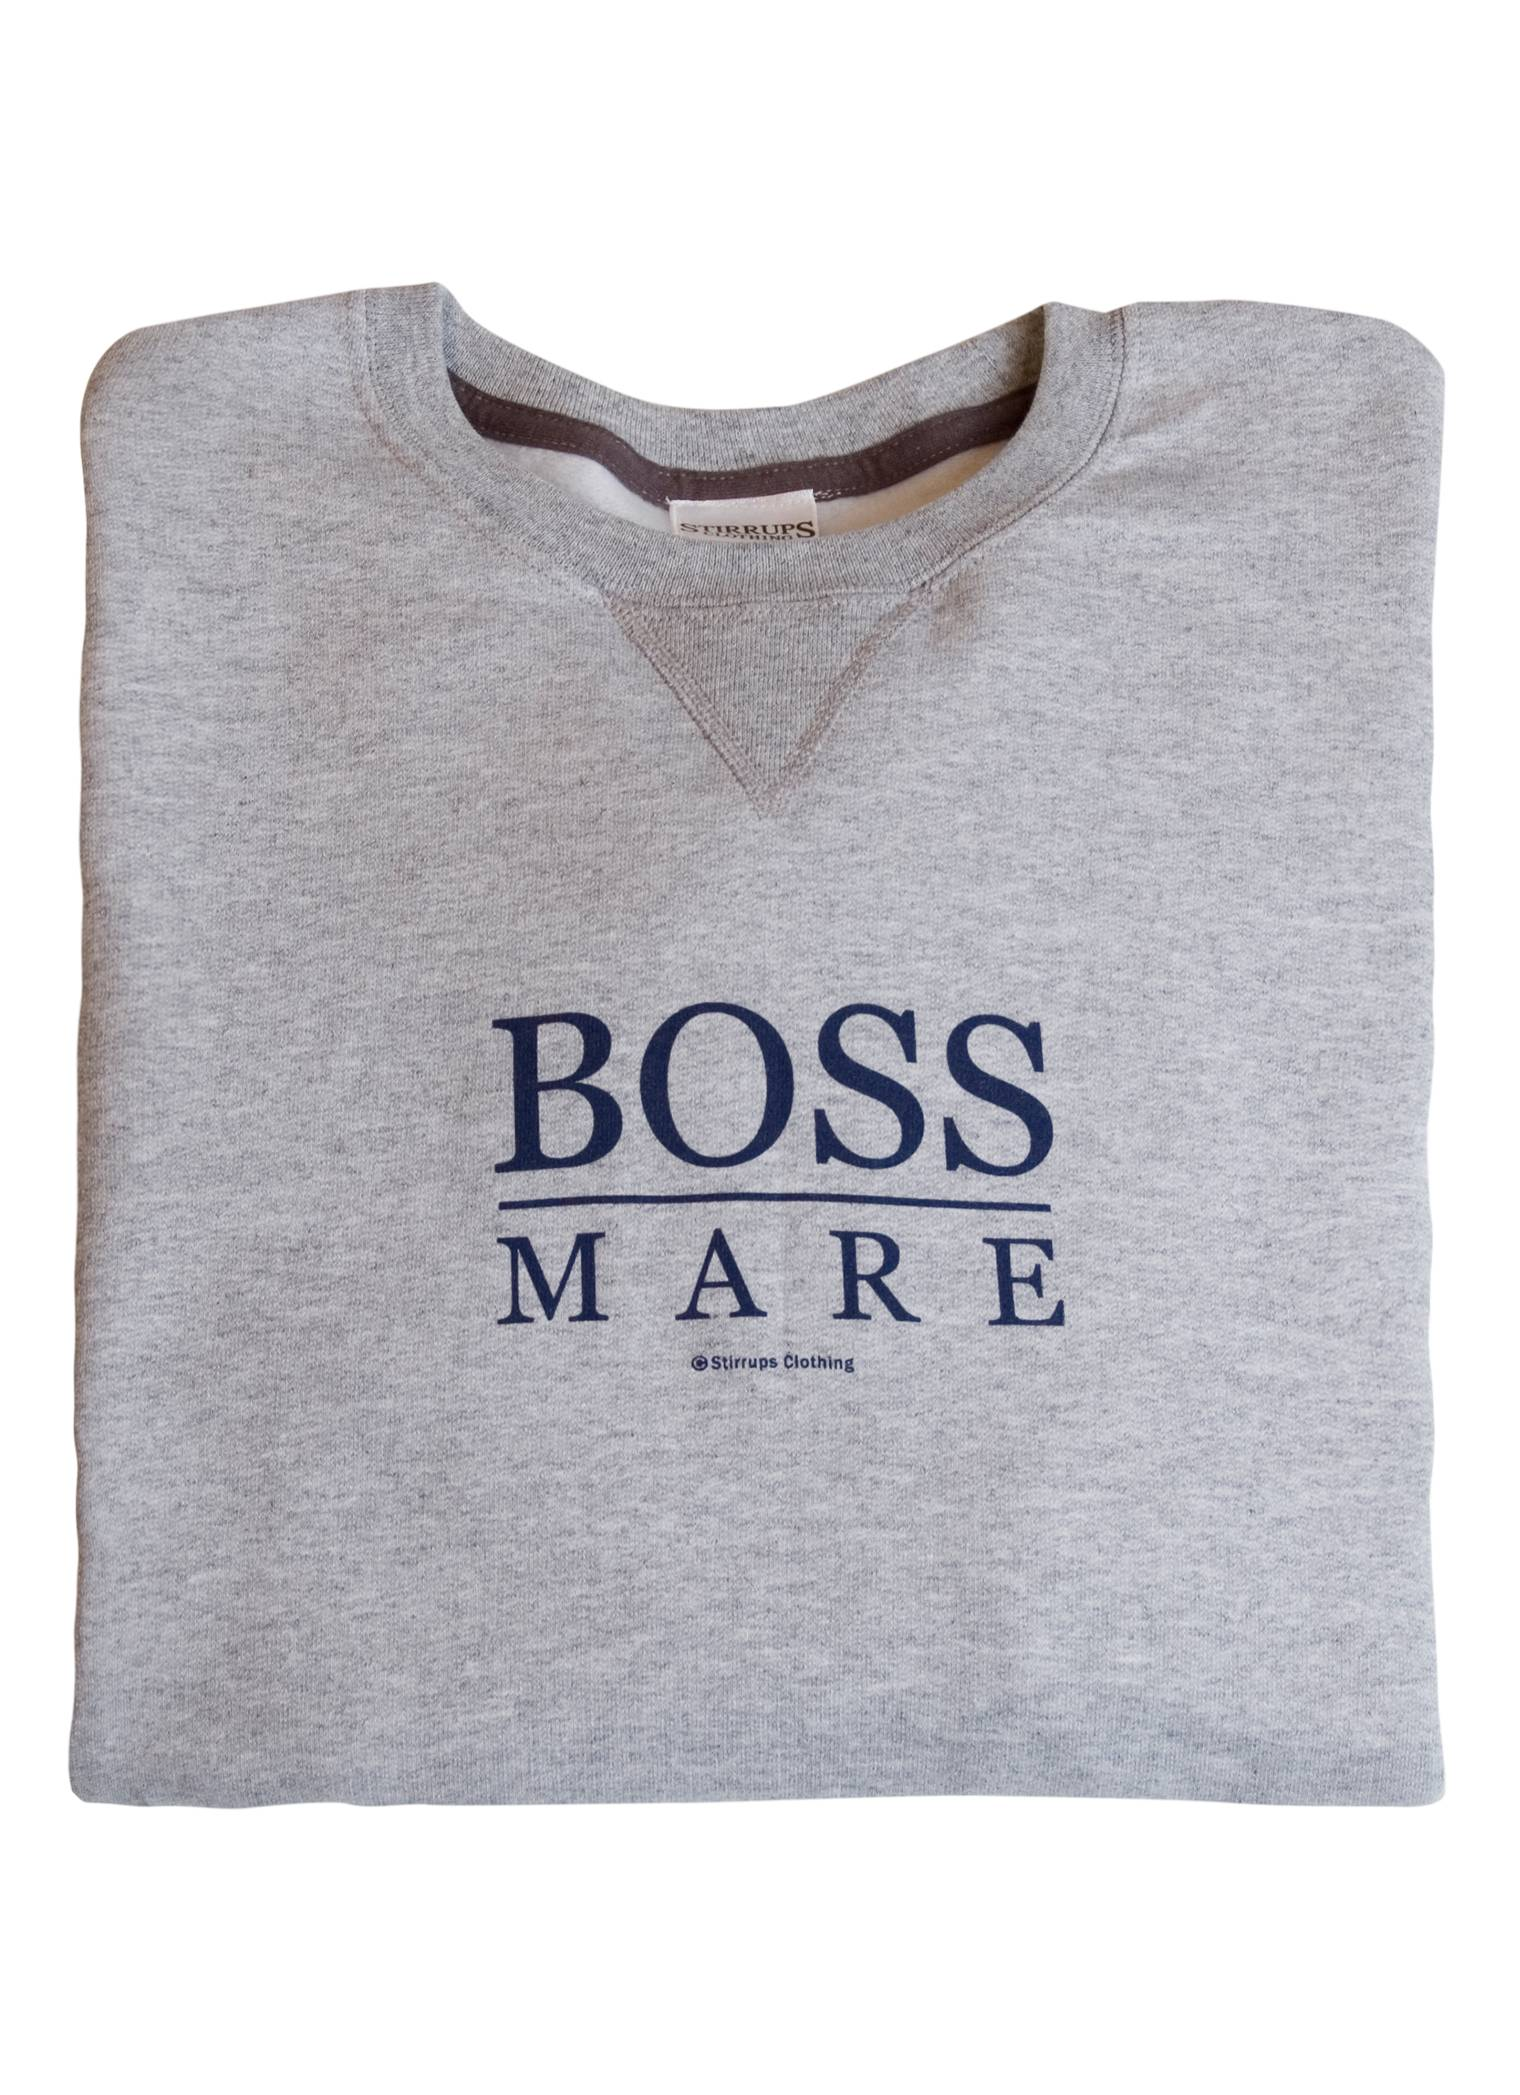 Stirrups Boss Mare Crewneck Sweatshirt - Ladies